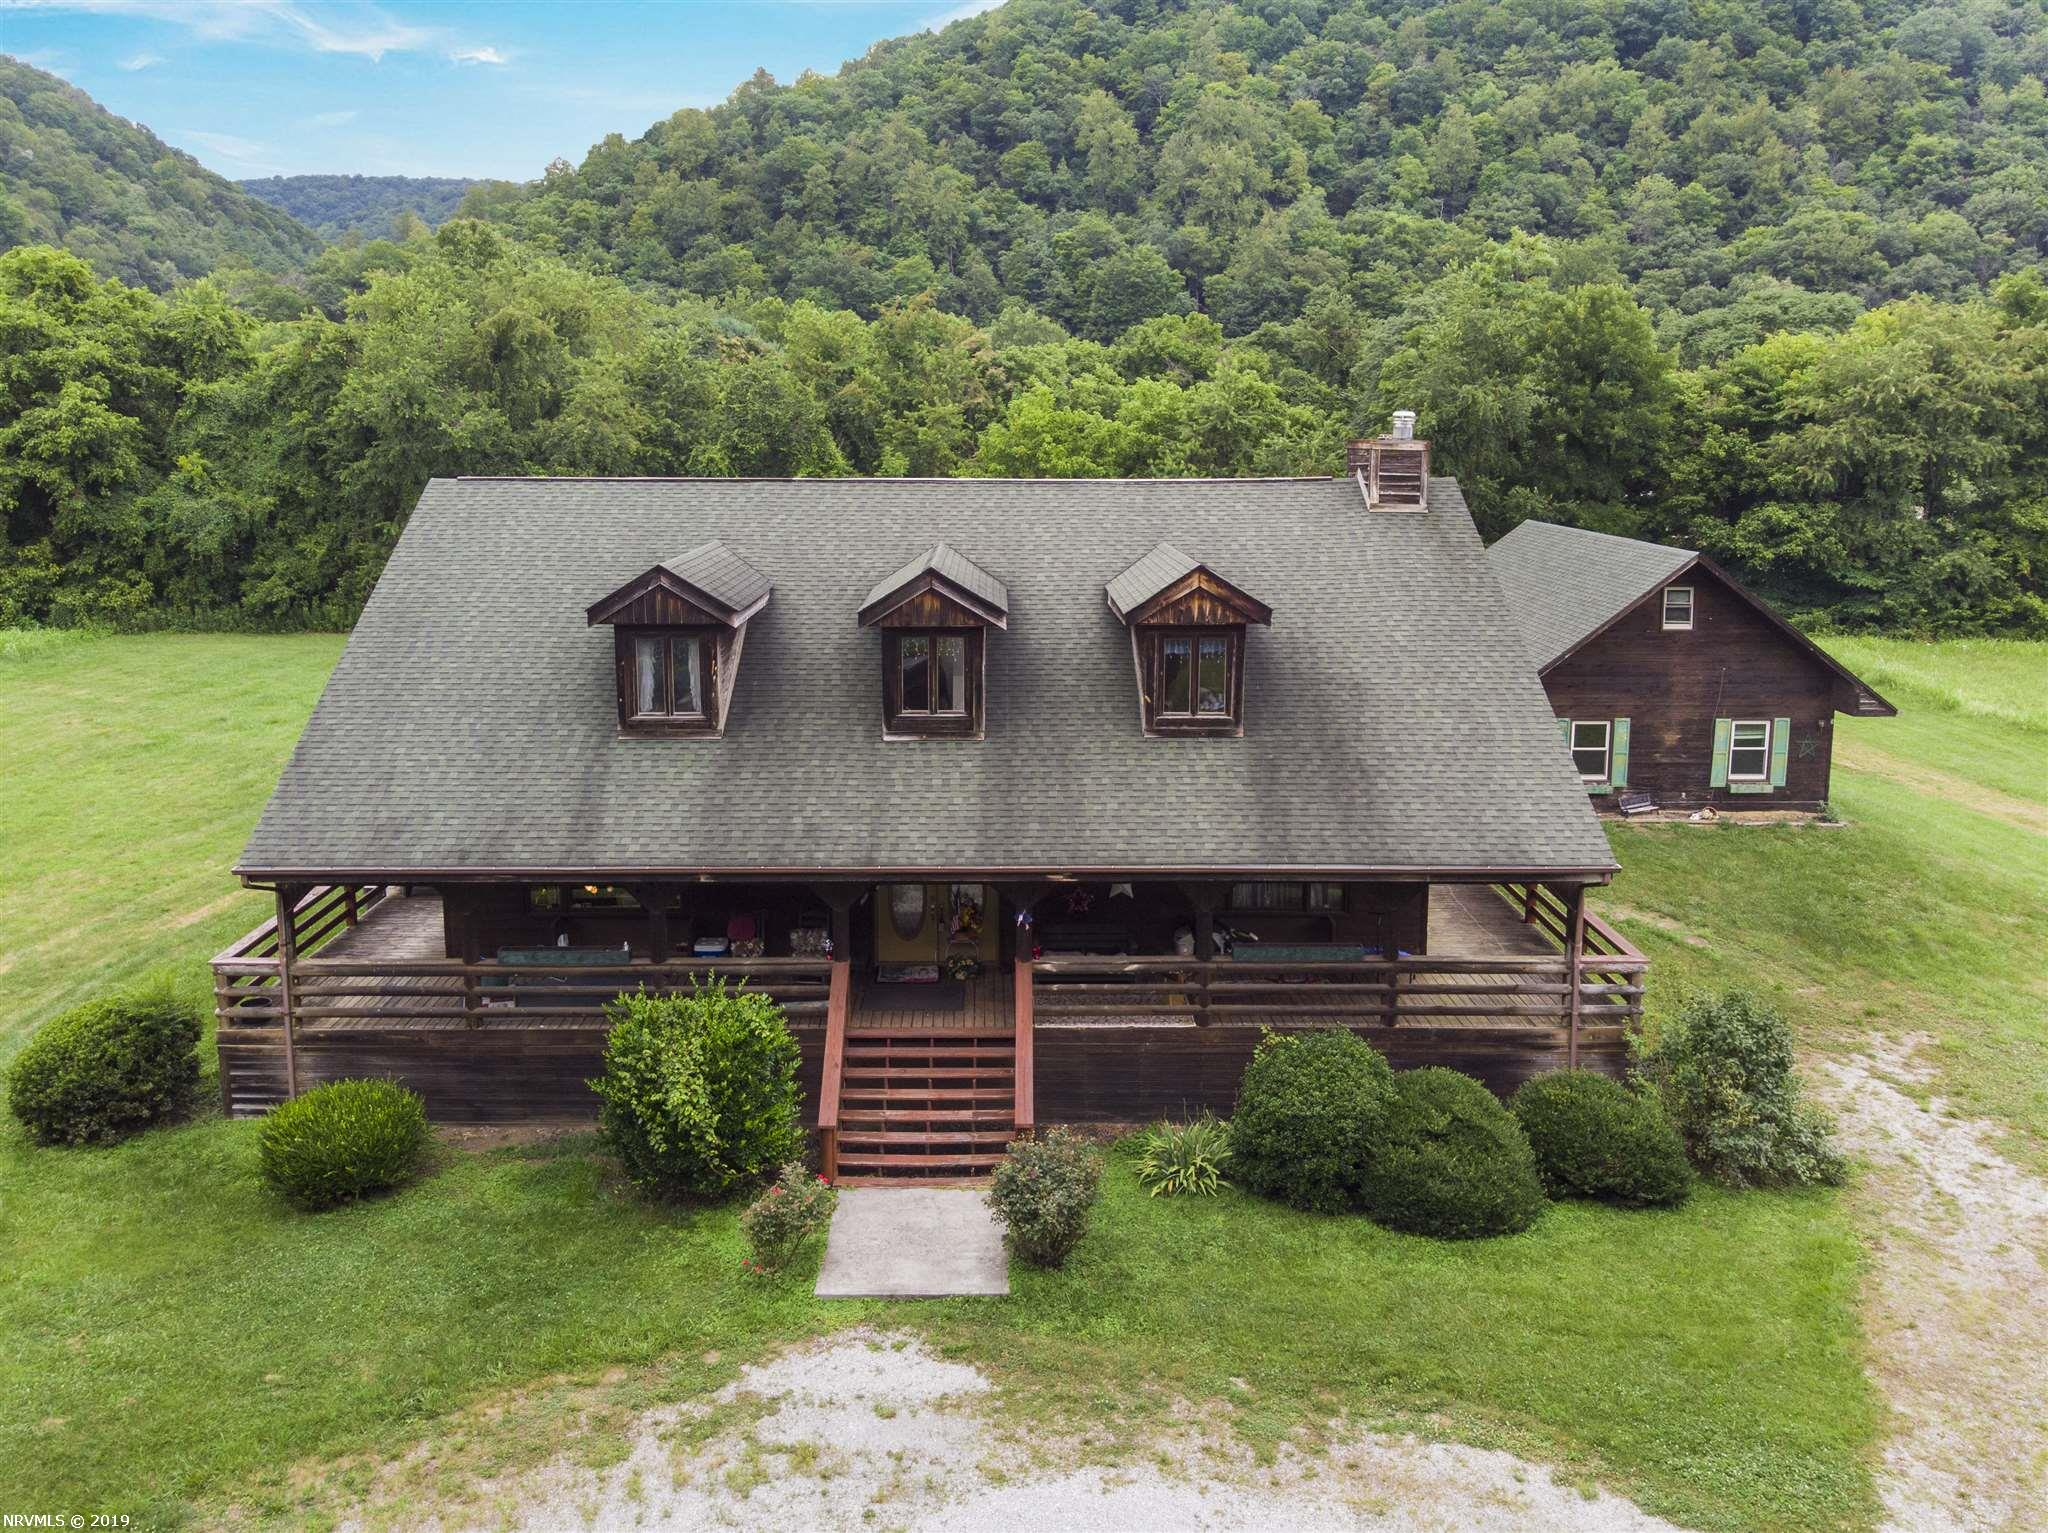 This Beautiful cedar-sided home sits on 7.47 acres in Elliston conveniently located between Christiansburg and Salem.  Rustic log cabin feel, wrap around porch, gas fireplace, vaulted ceilings, exposed beams, large open floor plan, custom cabinets and much more.  Separate guest house with kitchen on site.  Wide open space with barn is perfect for Horse lovers or mini farm enthusiasts.  Great home with lots of space. Needs some TLC, but move in ready. Lot can be divided.  Come see for yourself!